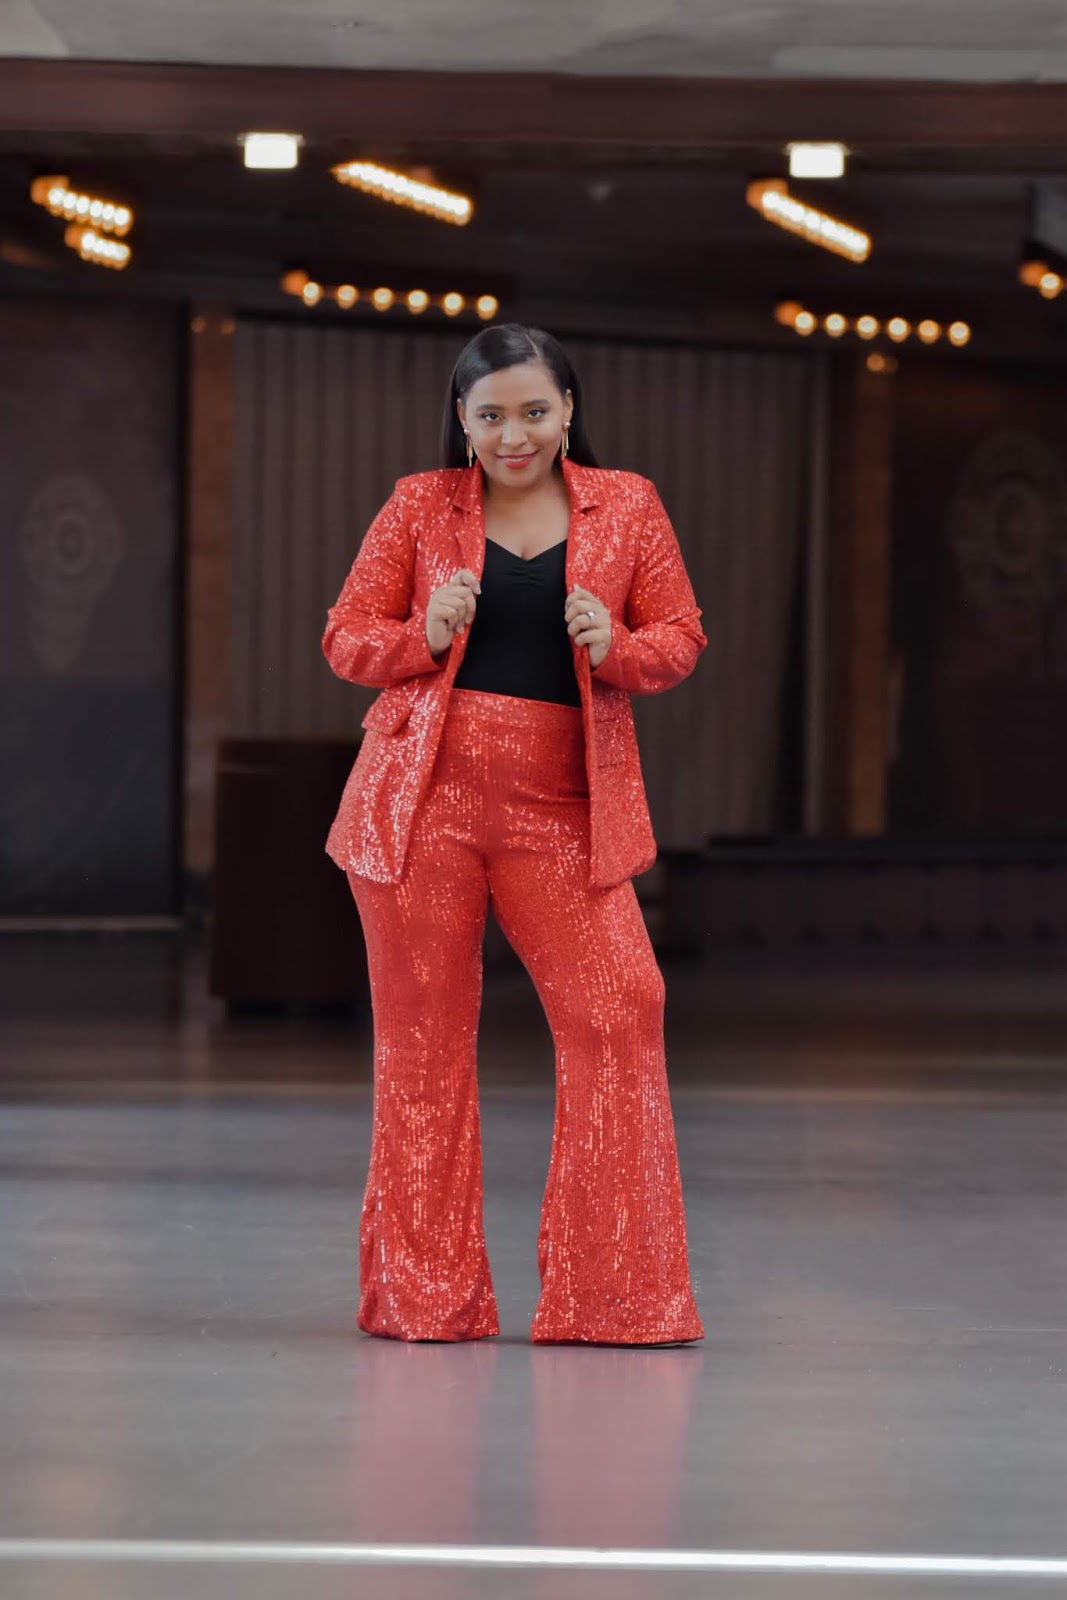 holiday outfit ideas, pattys kloset, party suit for women, sequins suit, red sequin suit, sequin outfits for the holidays, shein clothing reviews